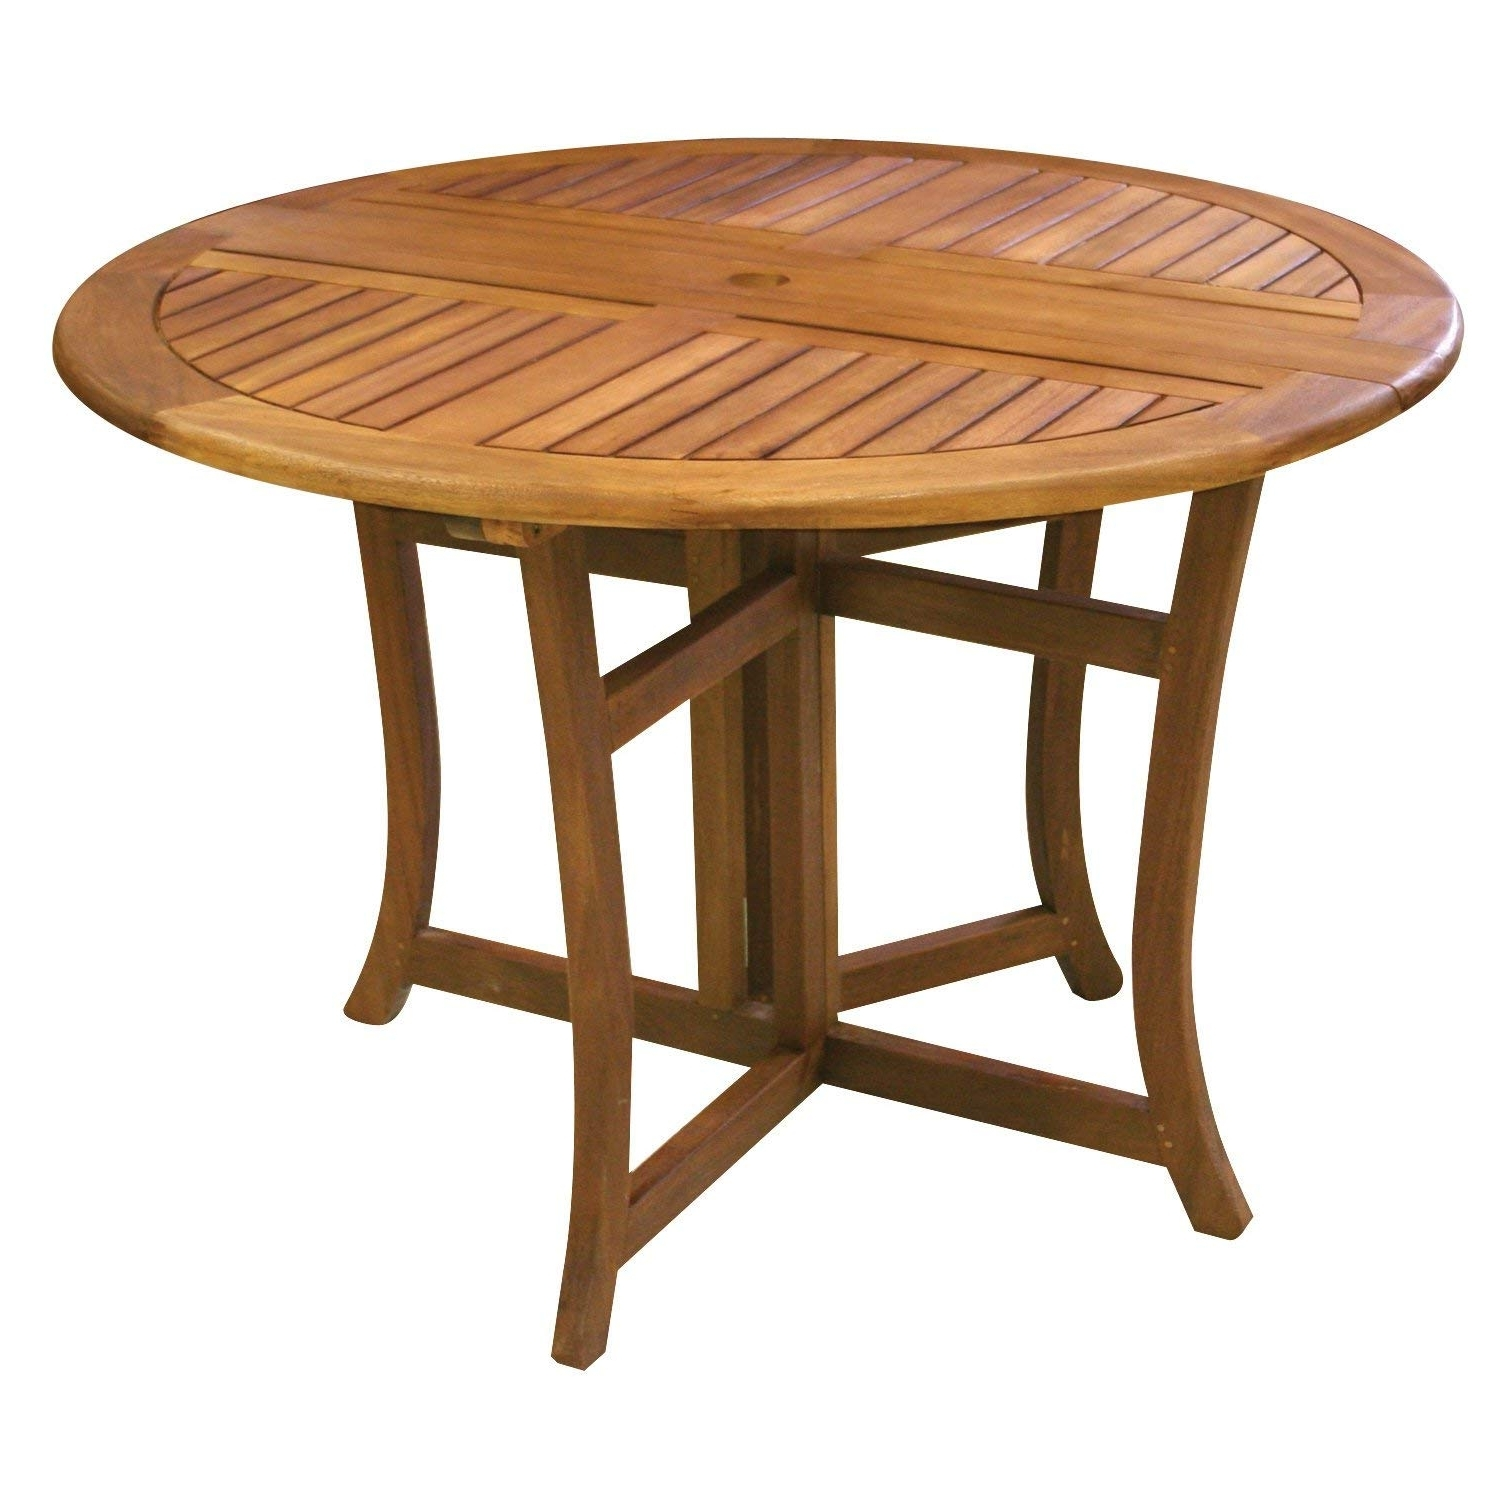 Best And Newest Wood Folding Dining Tables In Amazon : Eucalyptus 43 Inch Round Folding Deck Table : Patio (View 24 of 25)